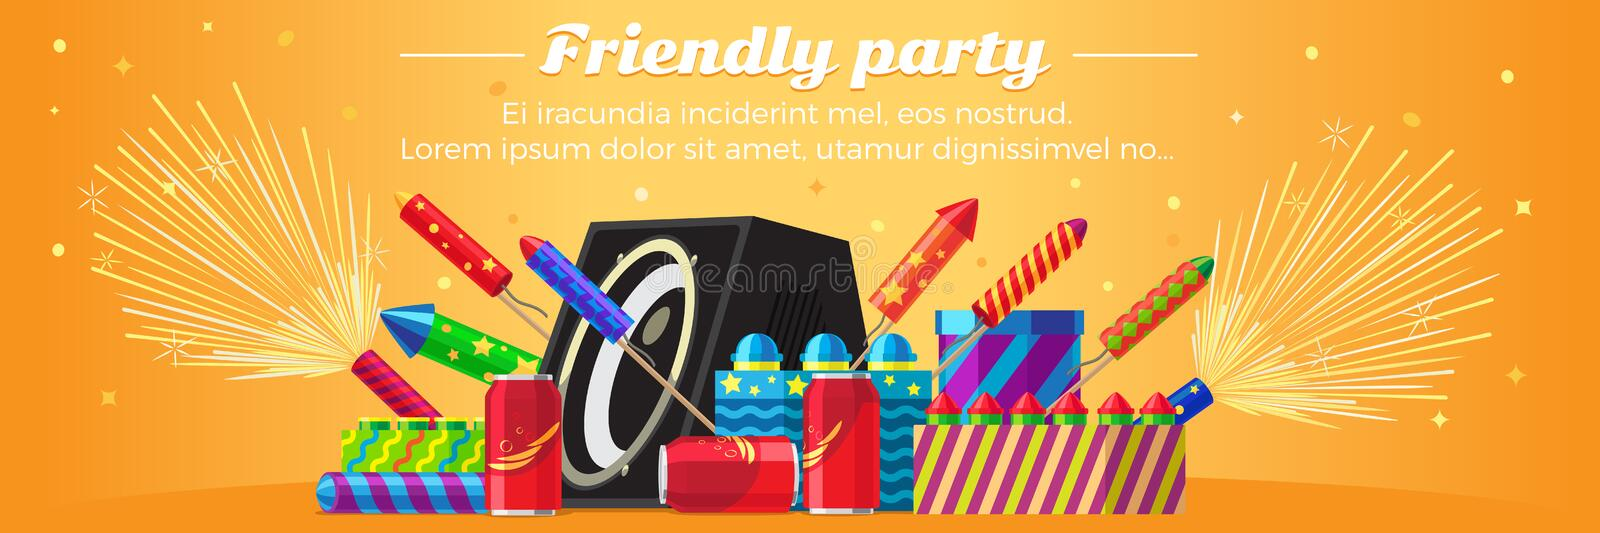 Friendly Party Banner. Fireworks for Festivals. Friendly party banner fireworks for festival and party. Different kinds of amazing fireworks and salute elements stock illustration